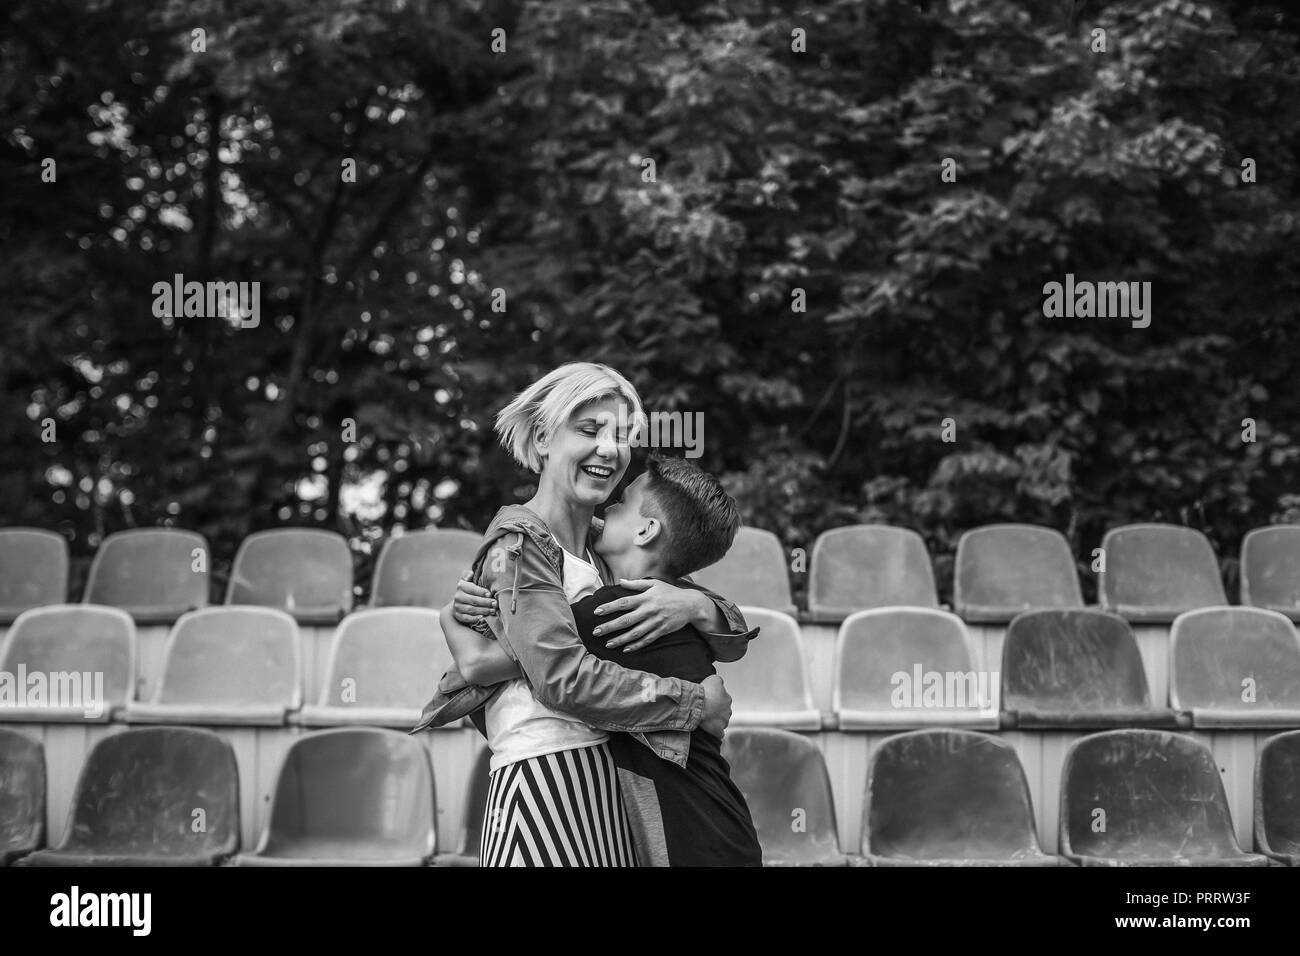 happy mother and son hugging on stadium, black and white photo - Stock Image